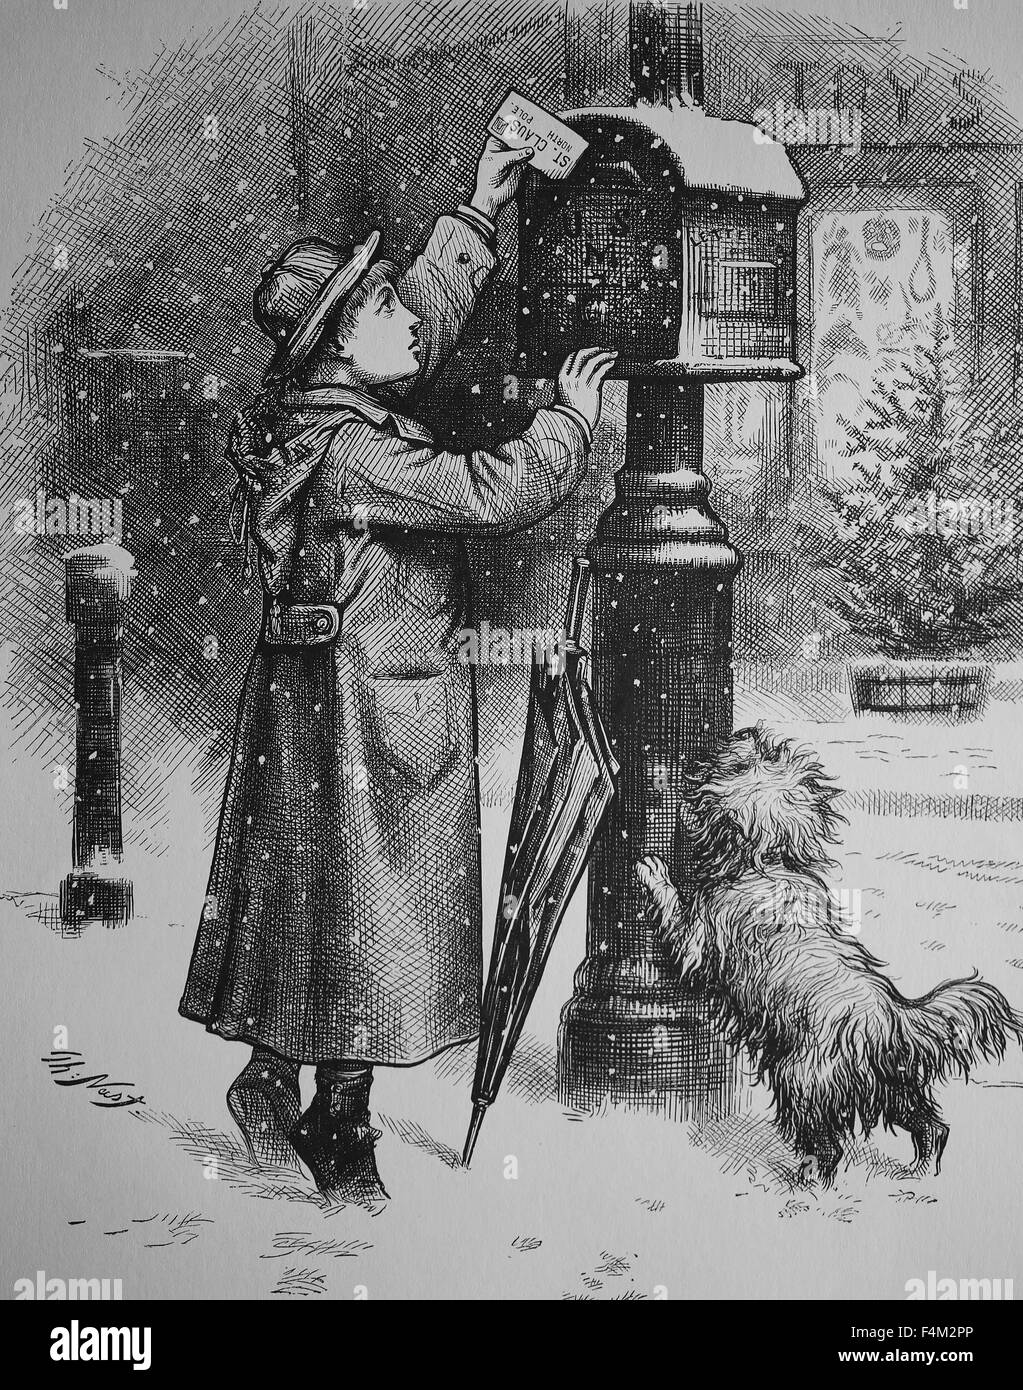 United States. 19th century. Christmas Post. Engraving by Thomas Nast. Published in Harper's Weekly. Stock Photo